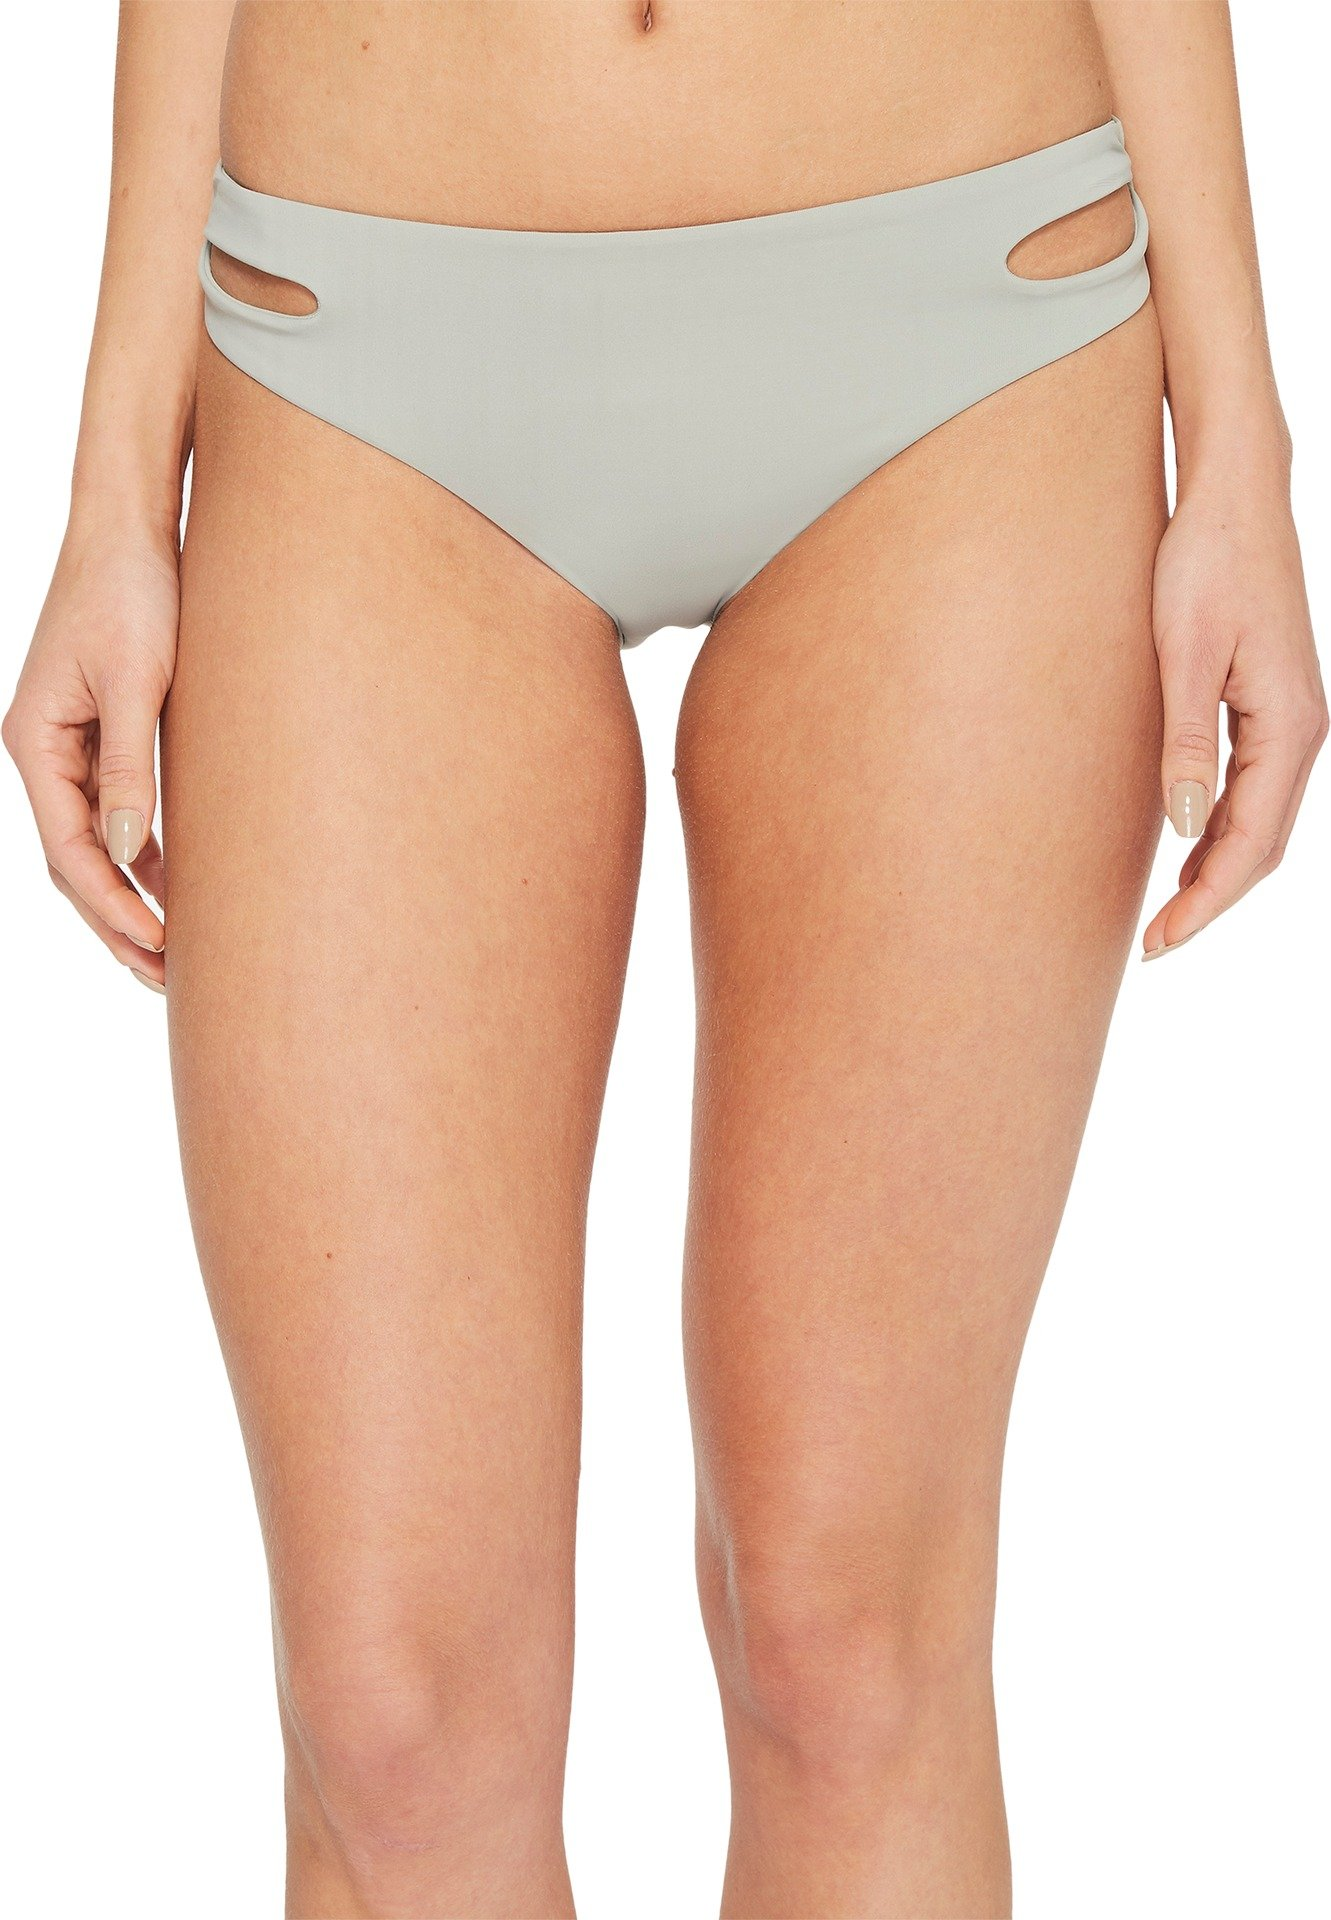 Roxy Junior's Solid Softly Love 70s Bikini Bottom, Wrought Iron, XS